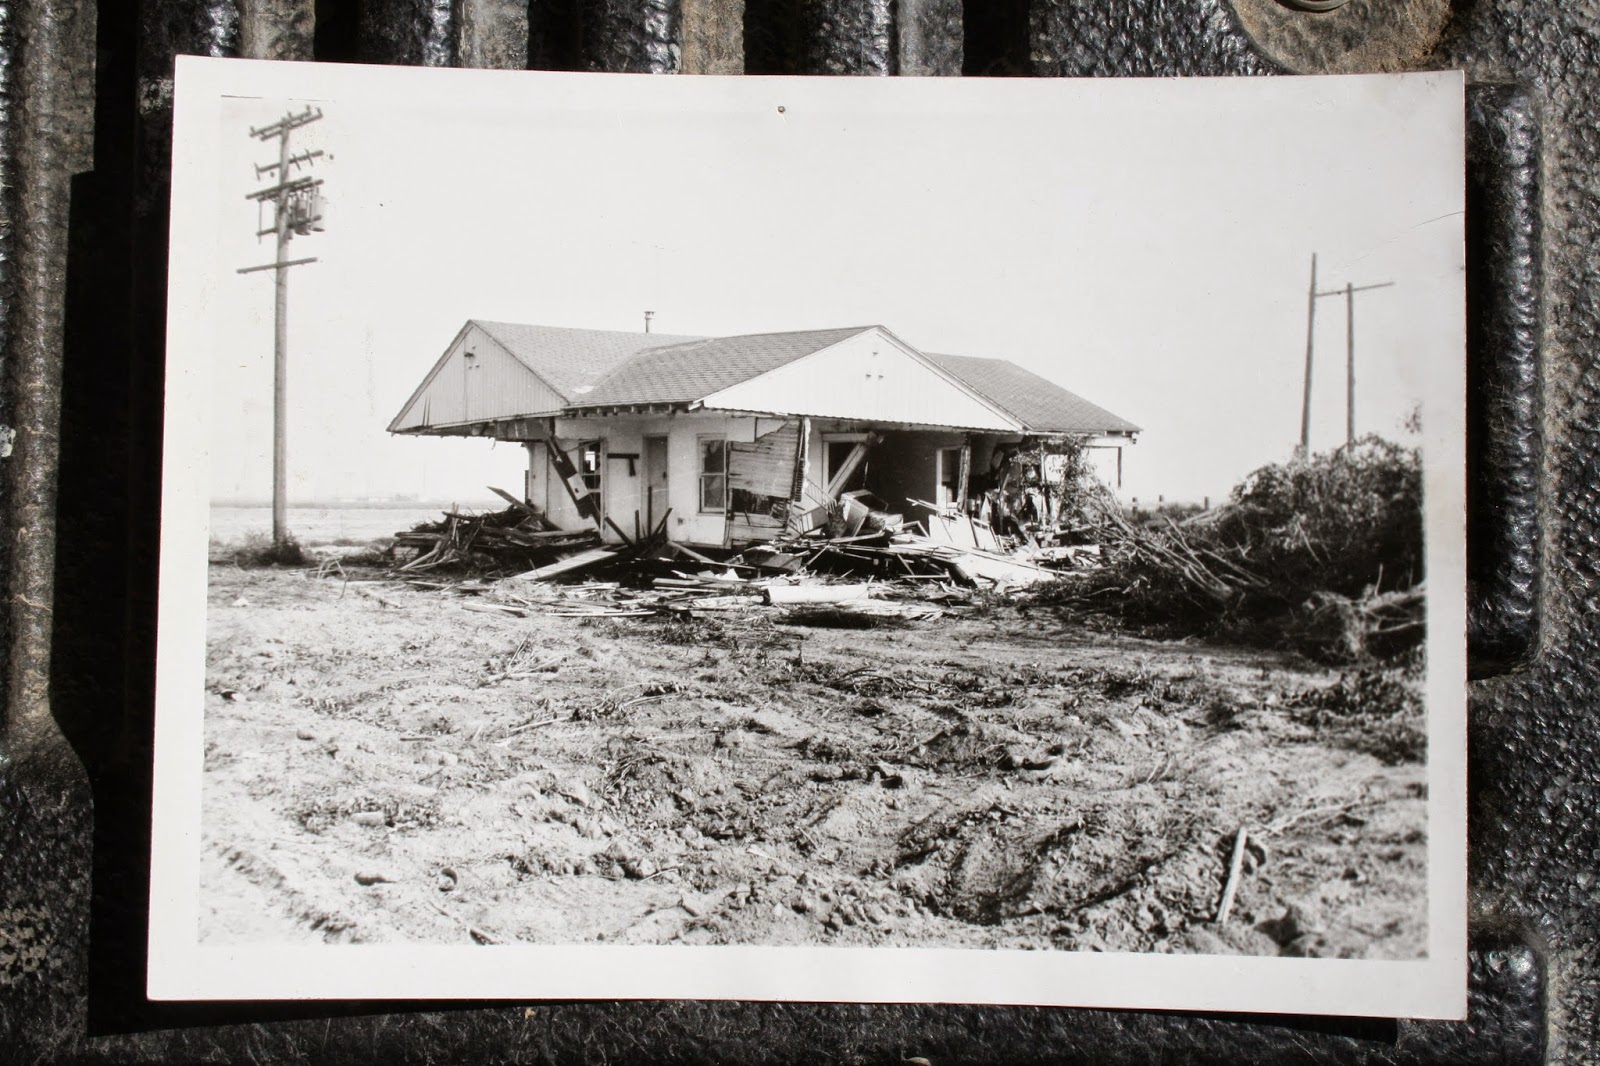 Destruction of Mom's house at Wintersburg Ranch, 1964, from Douglas McIntosh.jpg